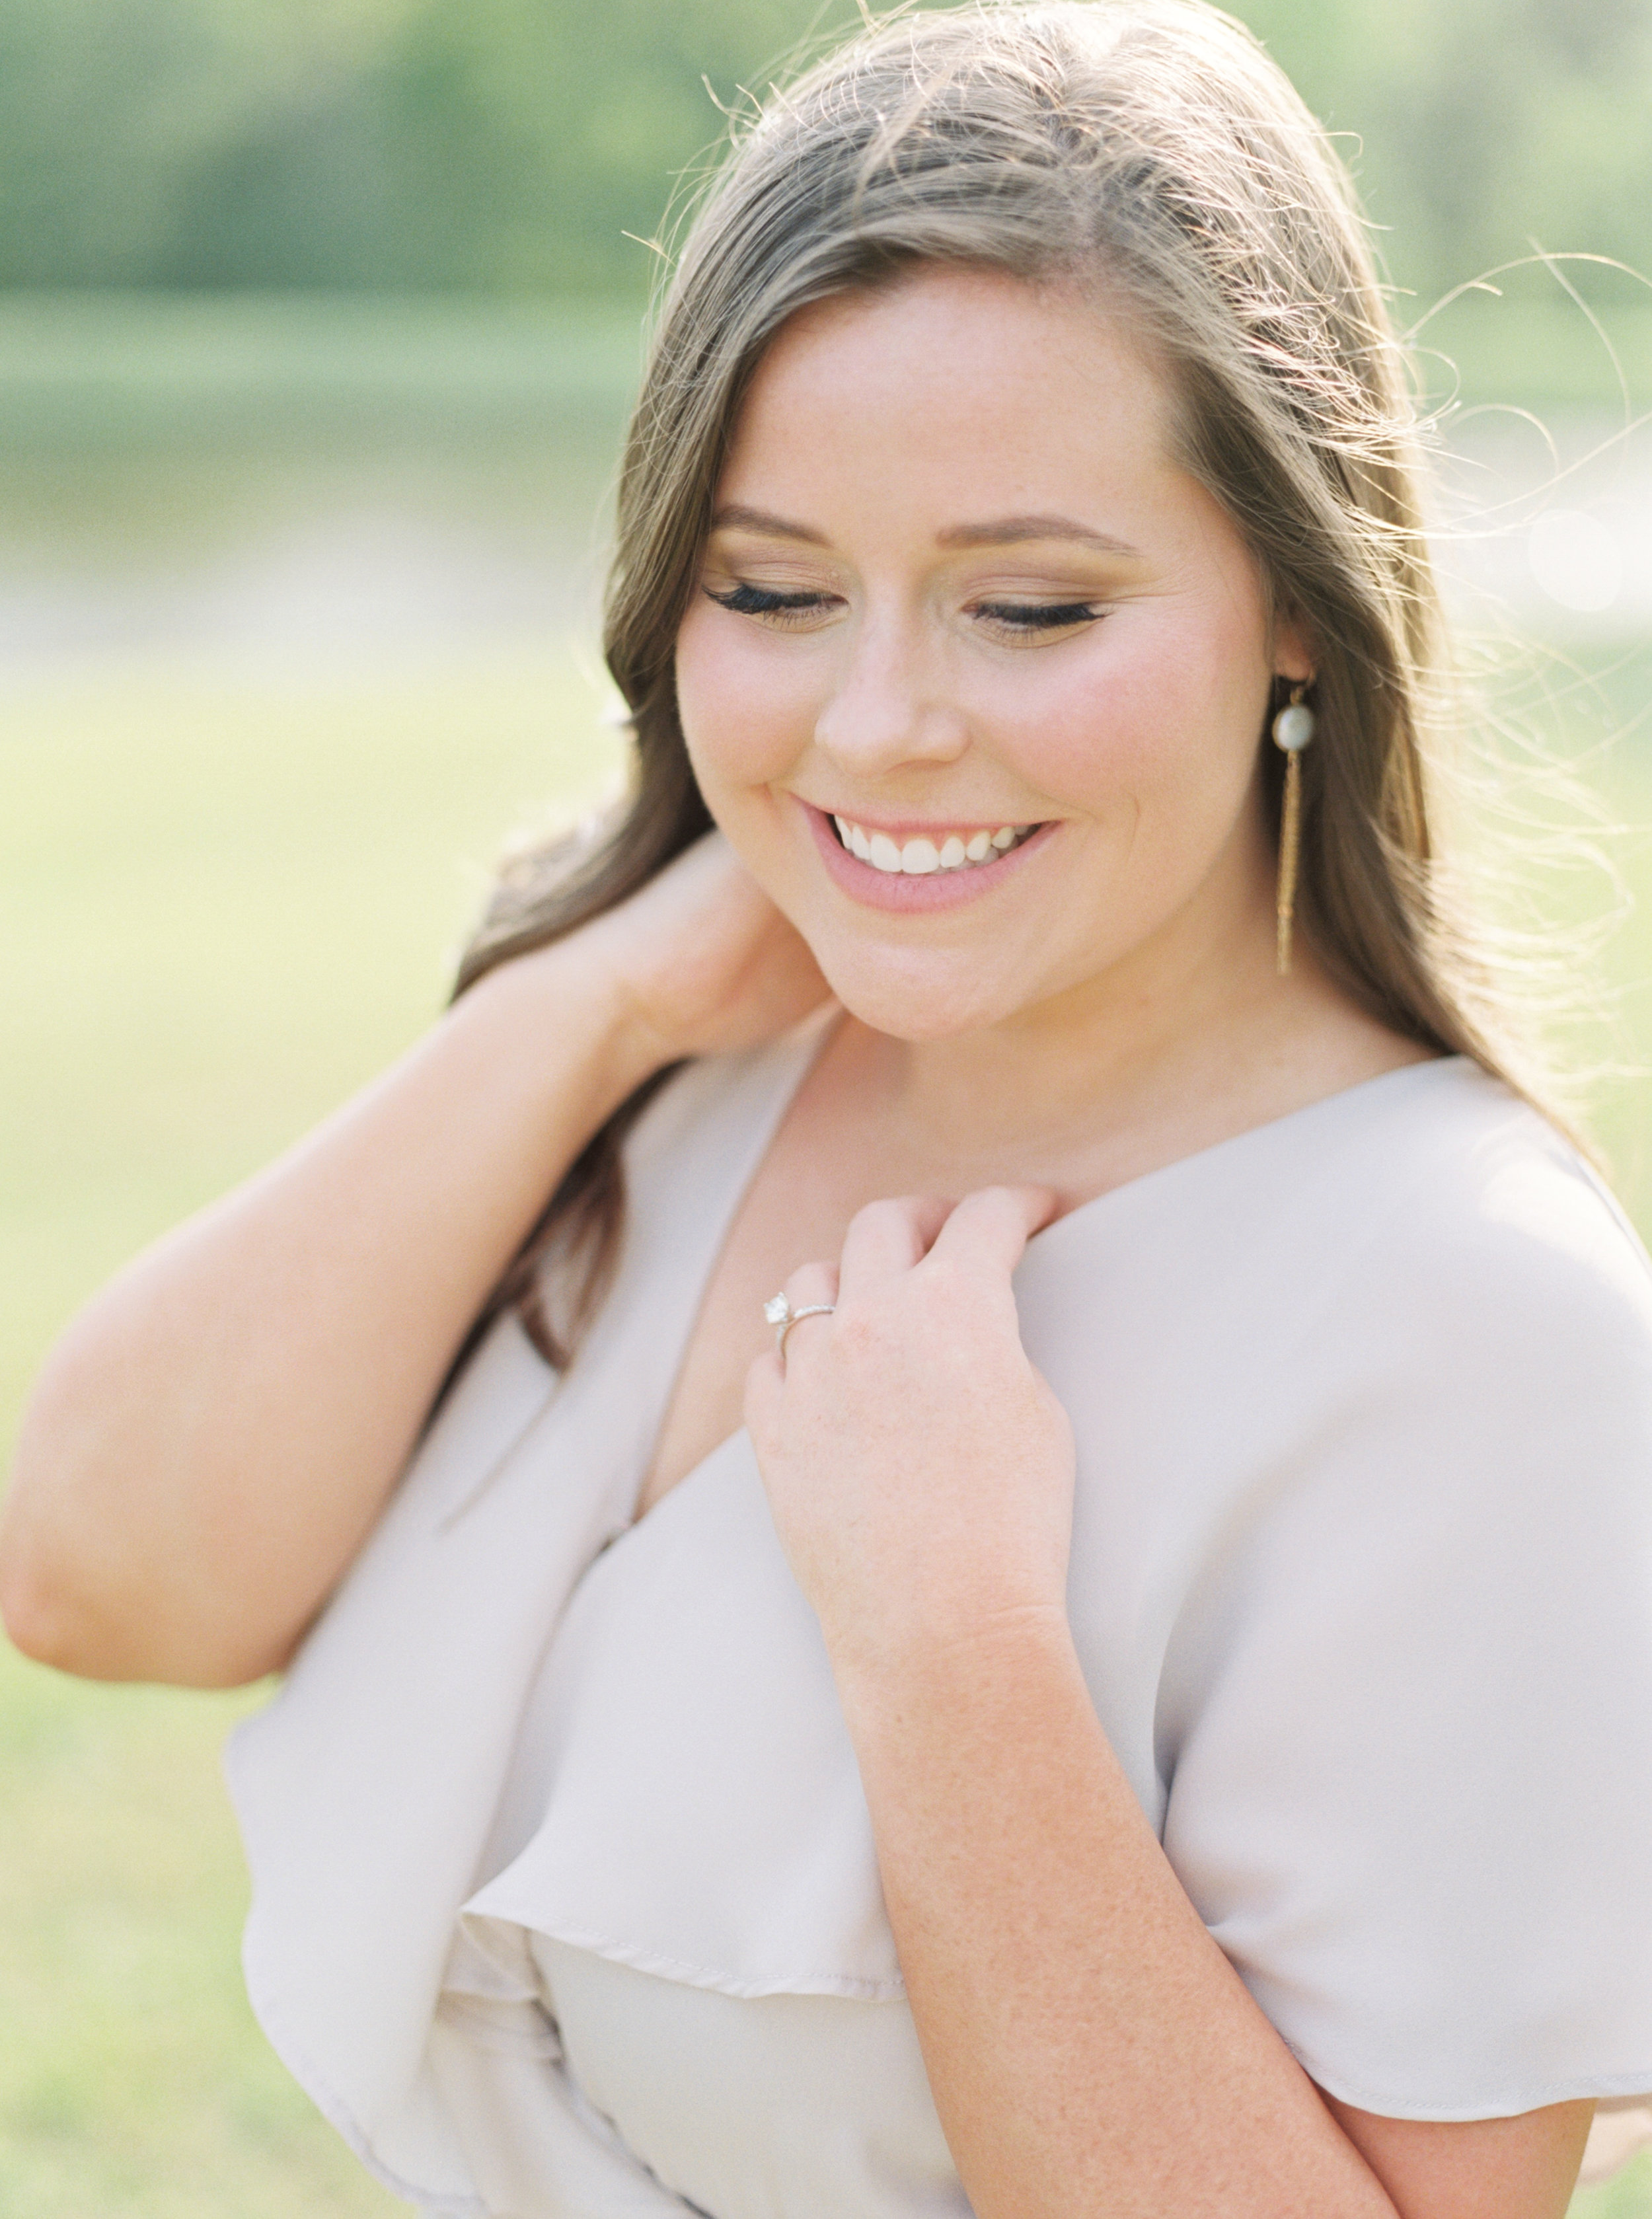 Landon_Grant_Carter_Film_Engagement_Session_Lake_Fallen_Photography_Columbus_Georgia-25.JPG